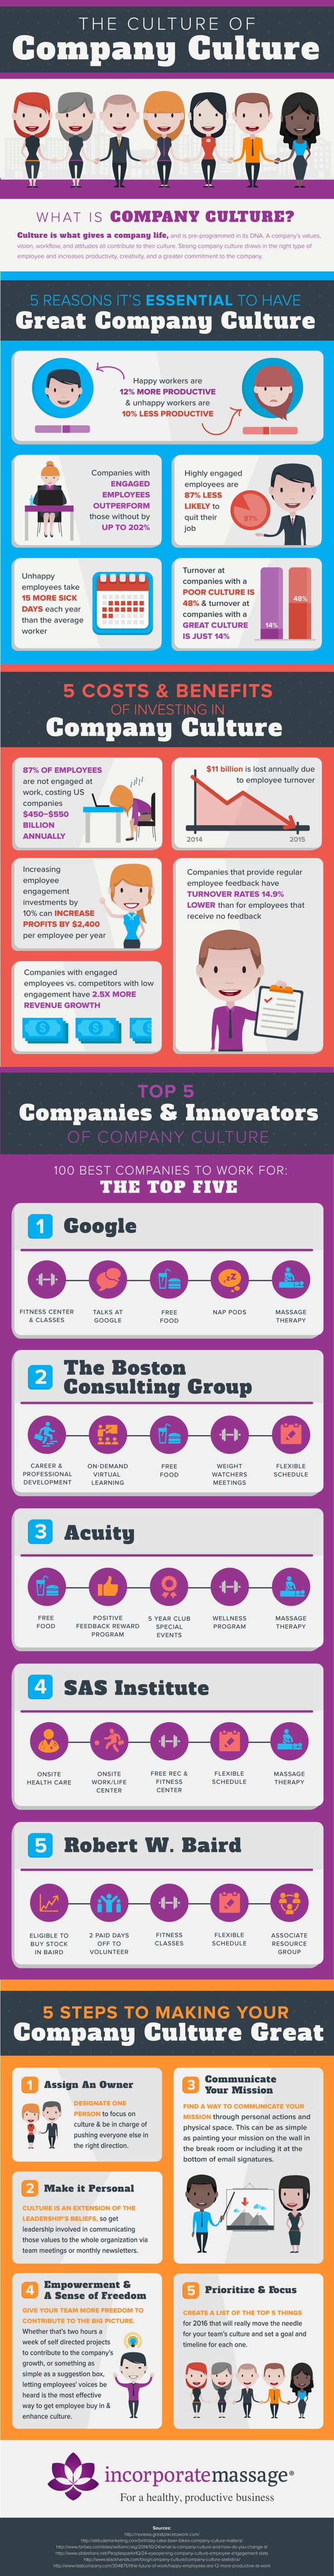 Uncategorized small business ideas small businesses ehow home business ideas to startsmall business ideas bad good ugly ideas - Company Culture Matters More Than You Think Infographic